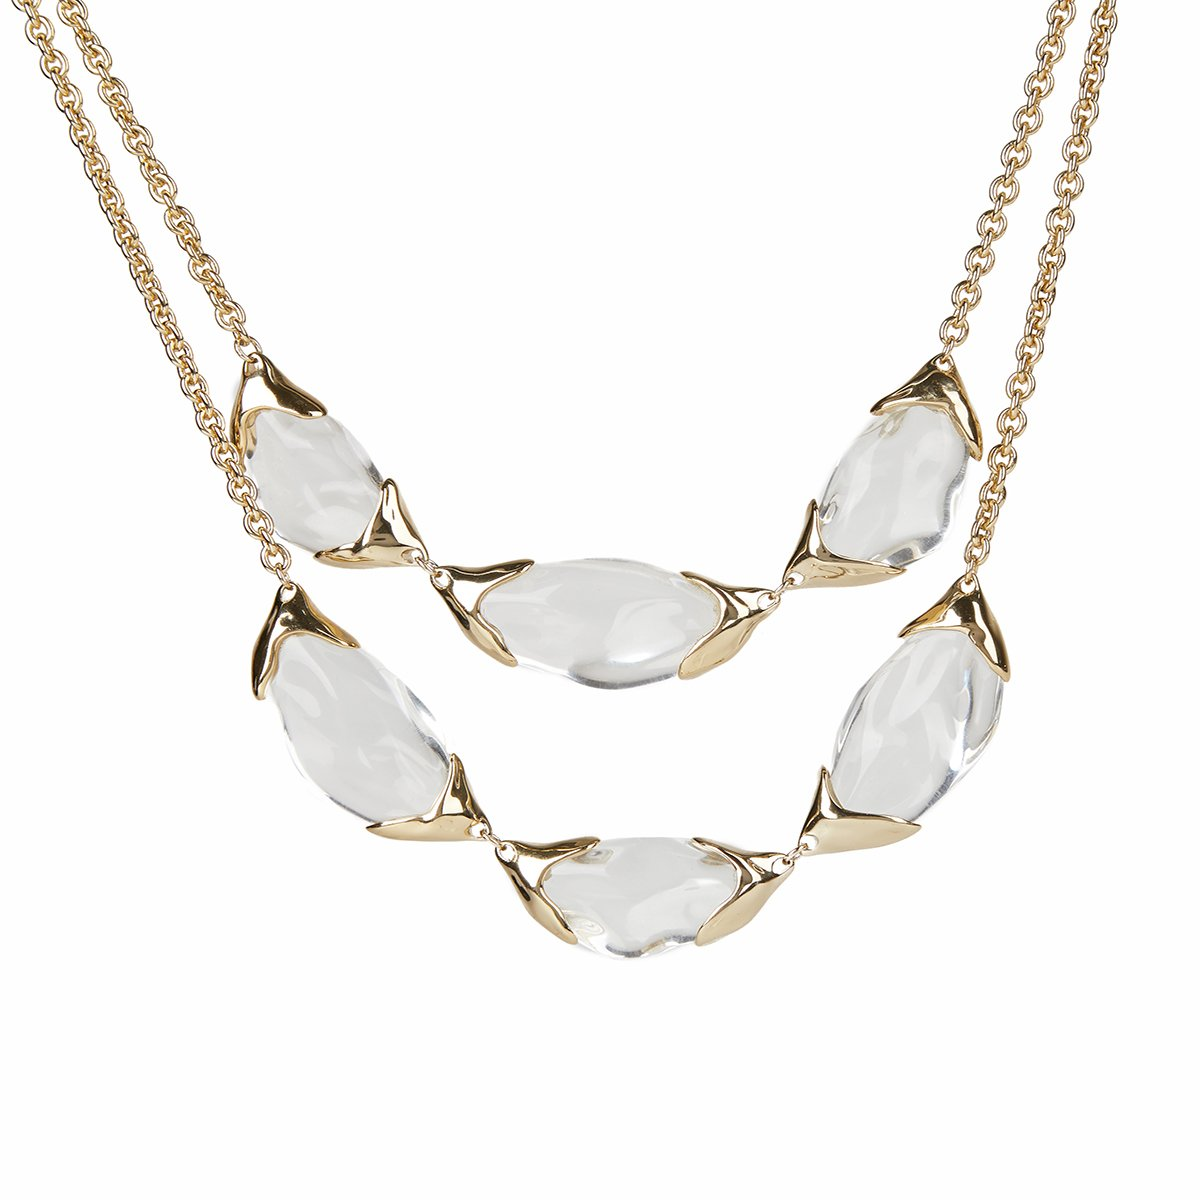 Encased Pebble Double Strand Bib Necklace